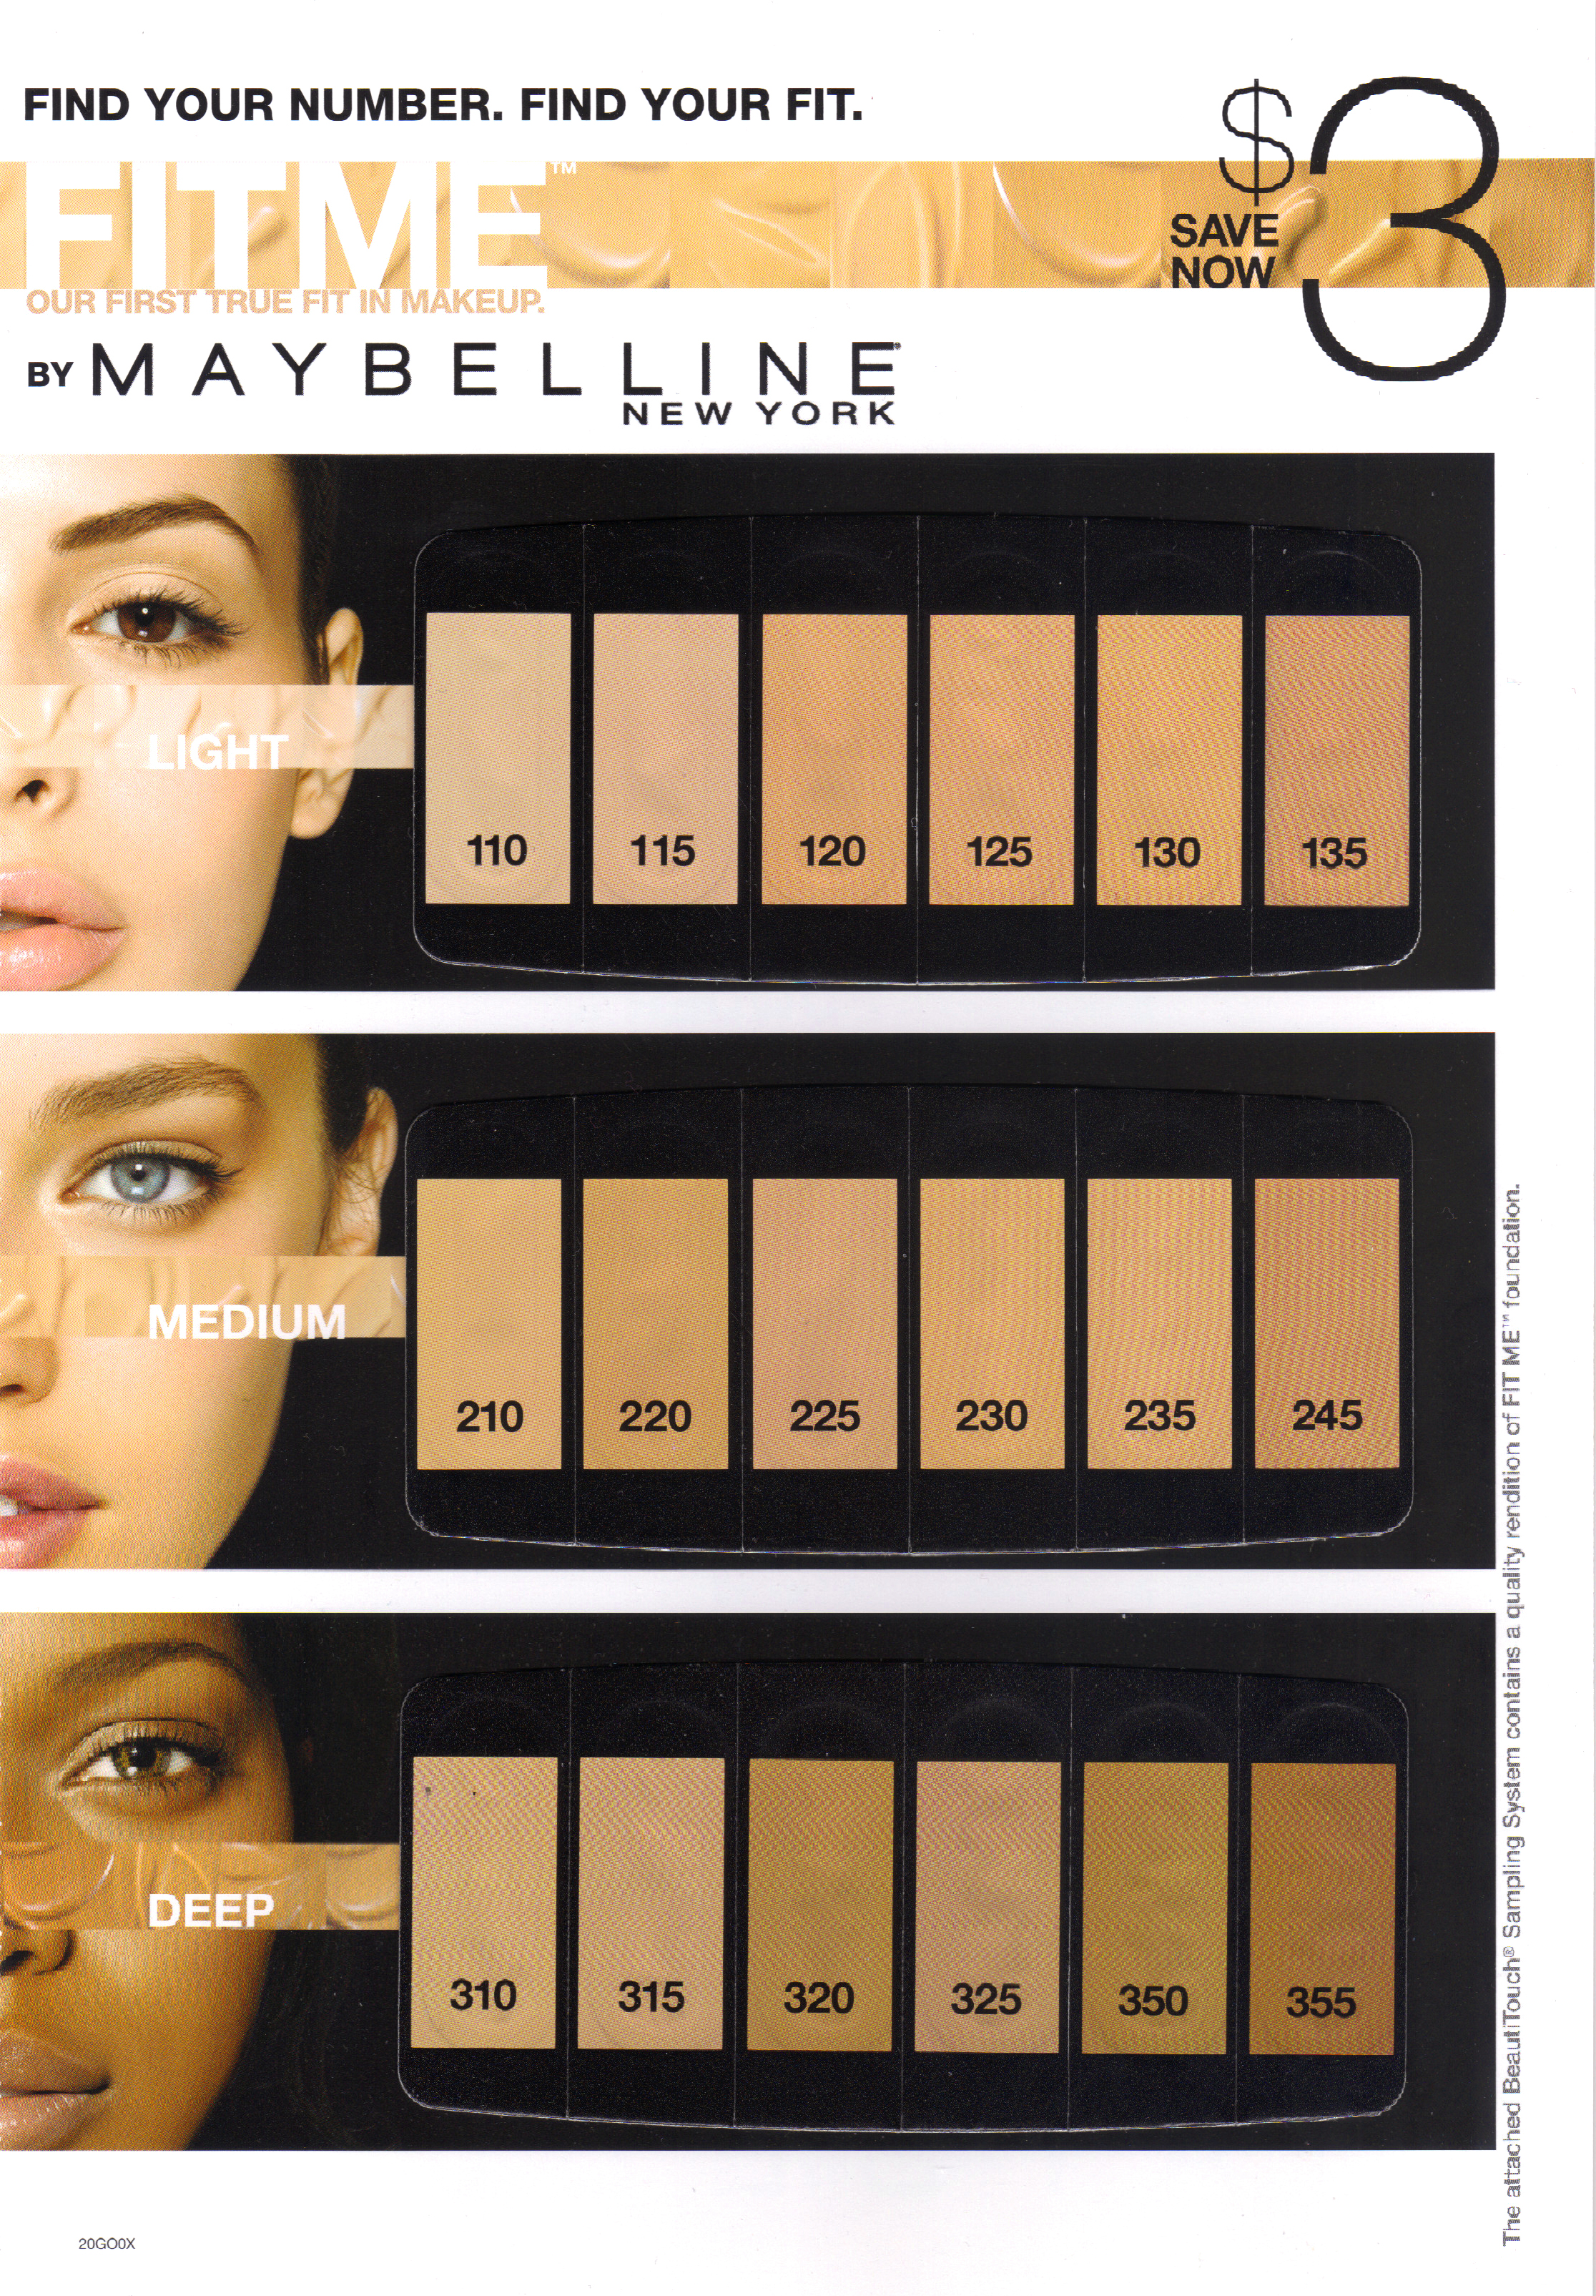 Maybelline's sle package ad